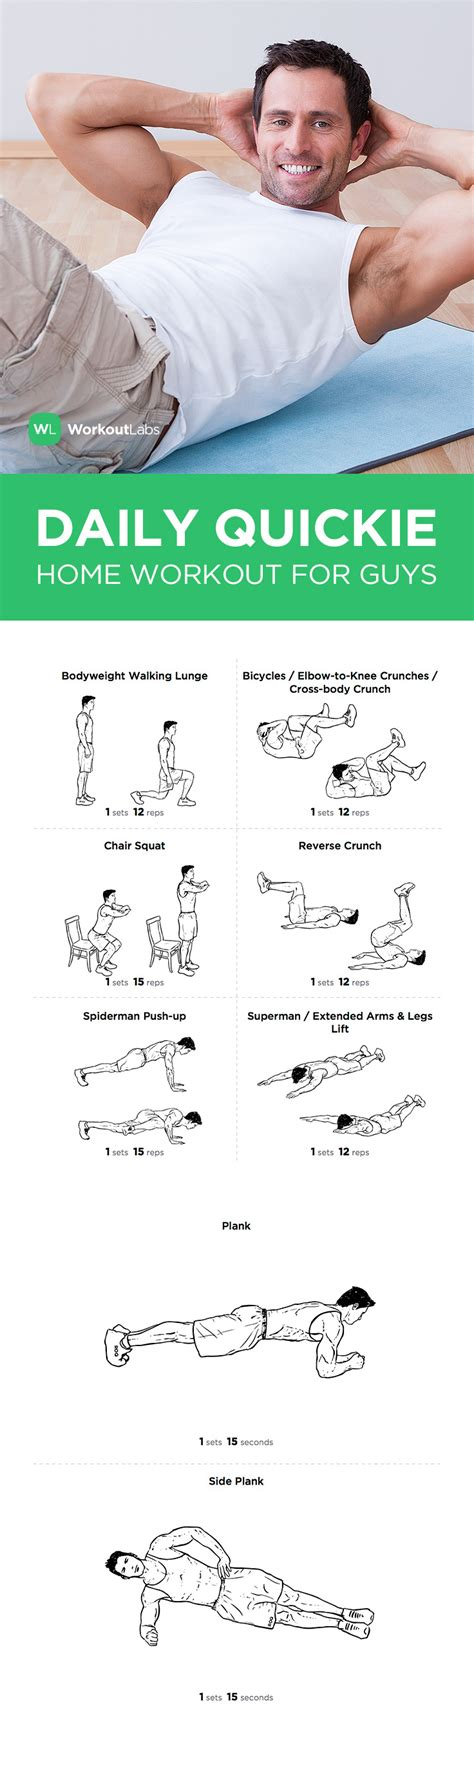 photo home dumbbell workout plan images dumbbell and